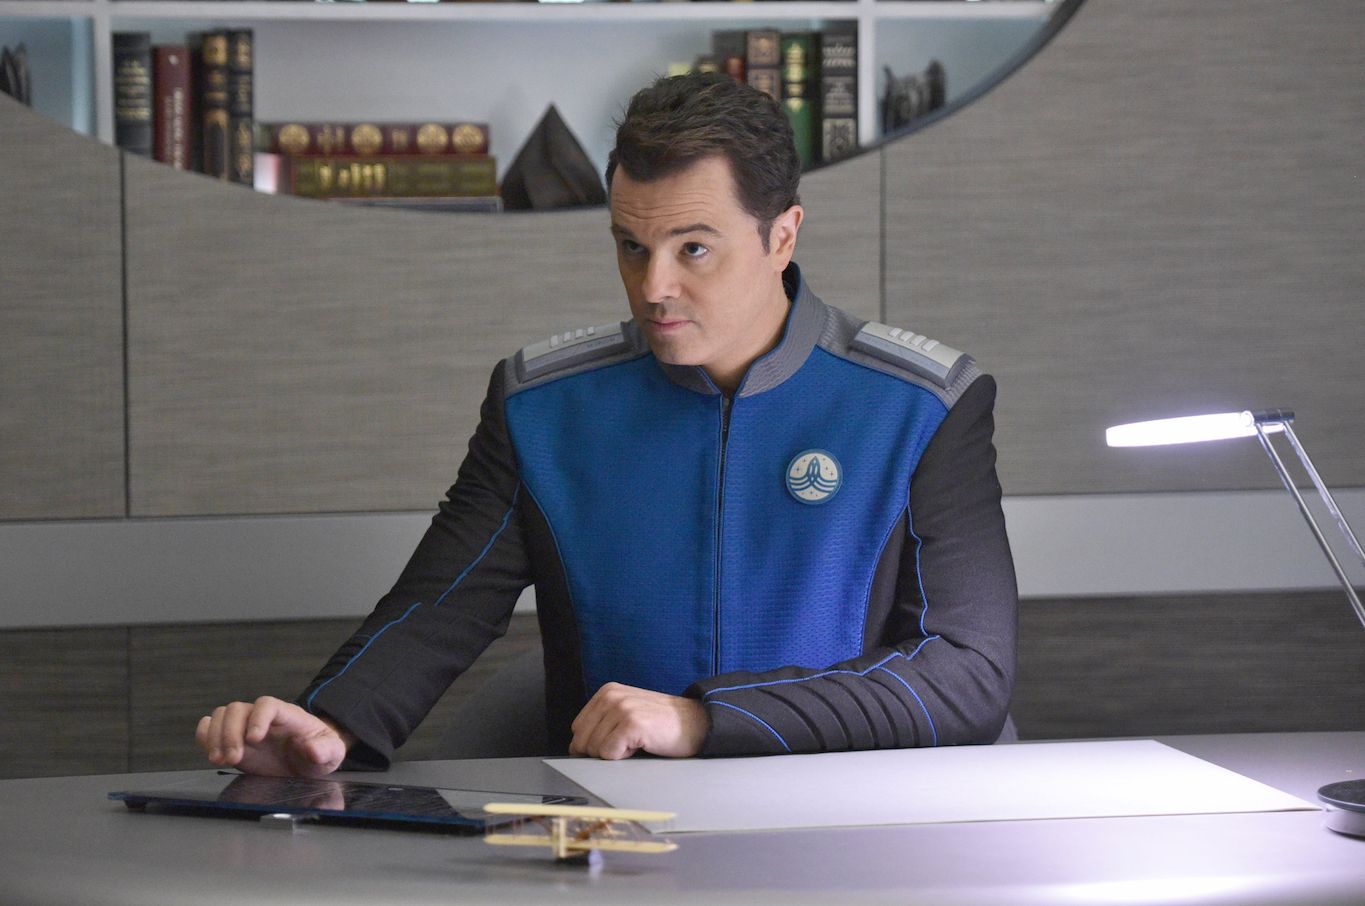 The Orville season 3: Renewal, cast, episodes, air date, plot and everything you need to know